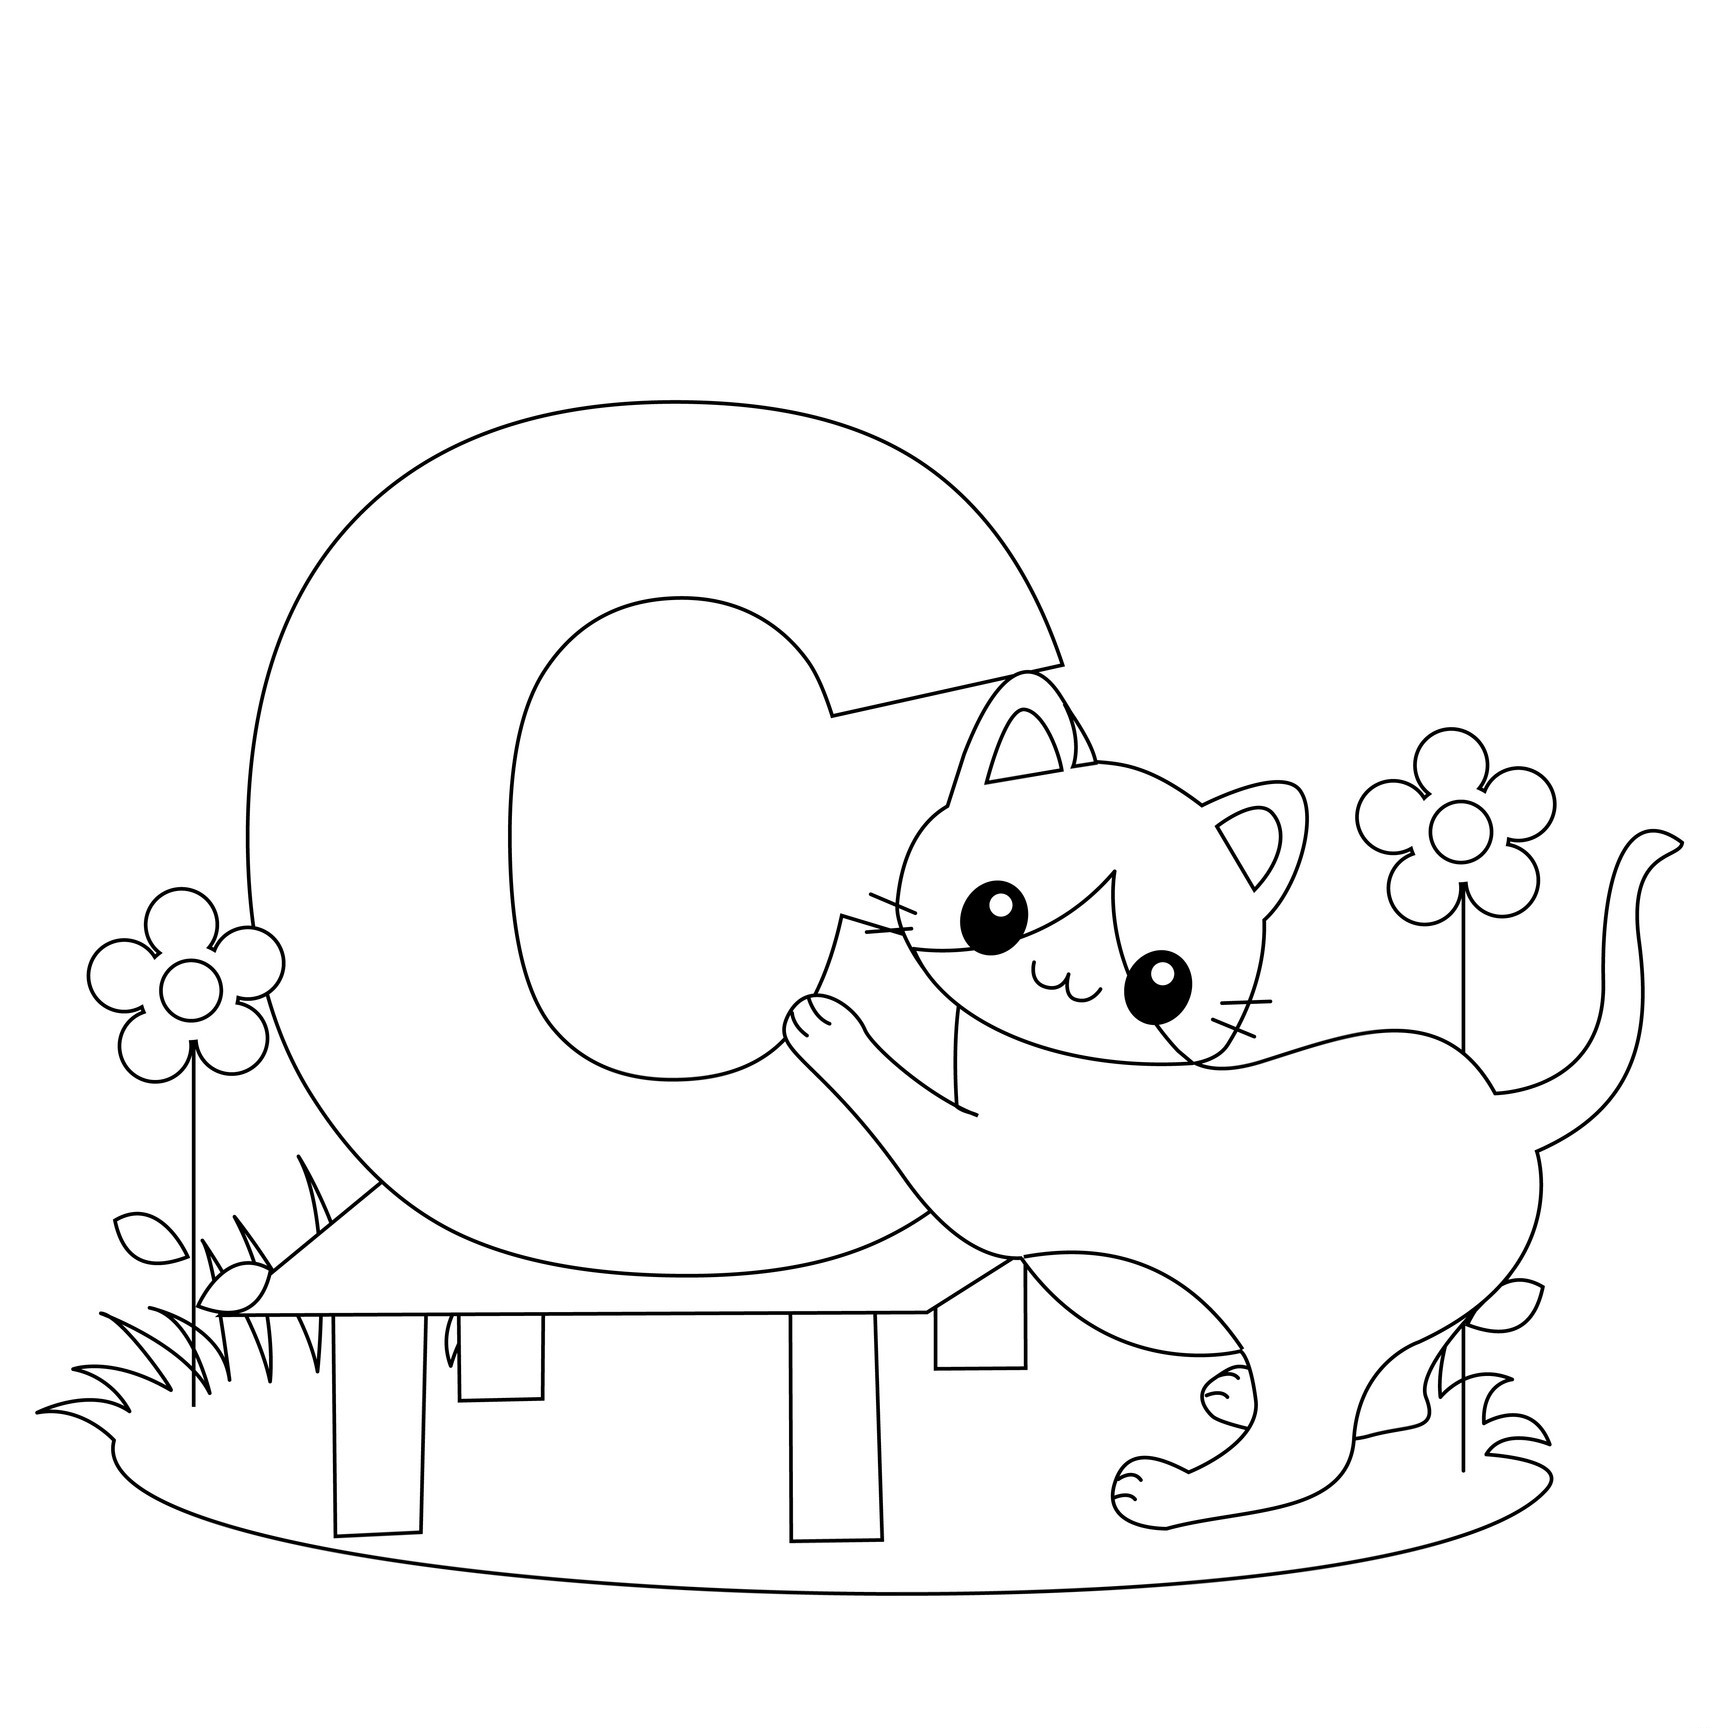 free printable alphabet coloring pages for kids best - Free Color Pages